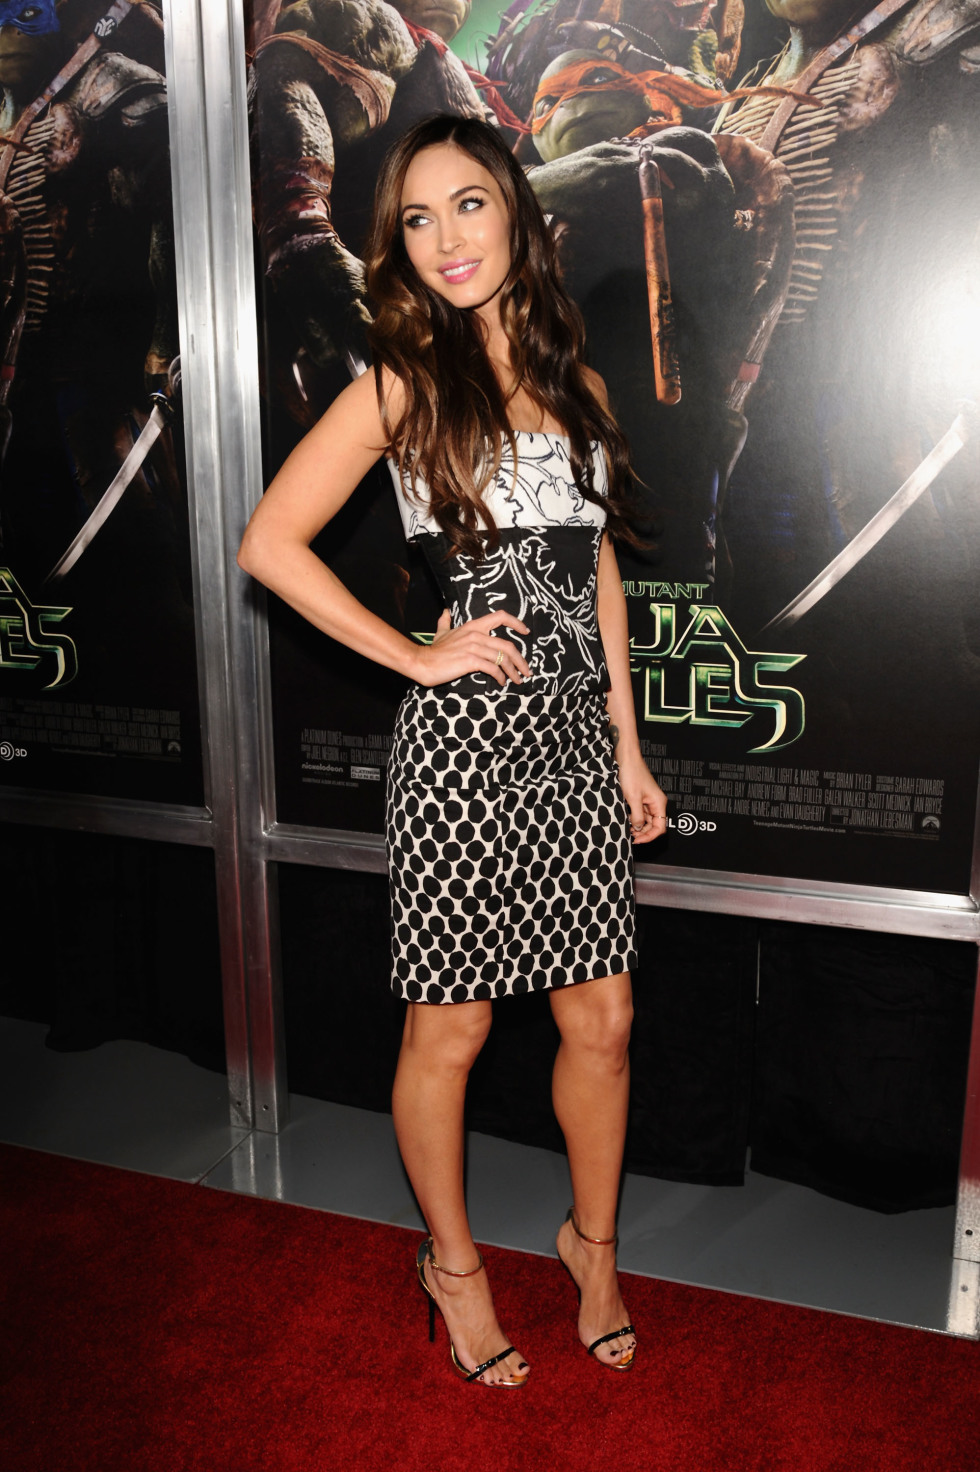 Megan Fox Wears Oscar De La Renta To Teenage Mutant Ninja